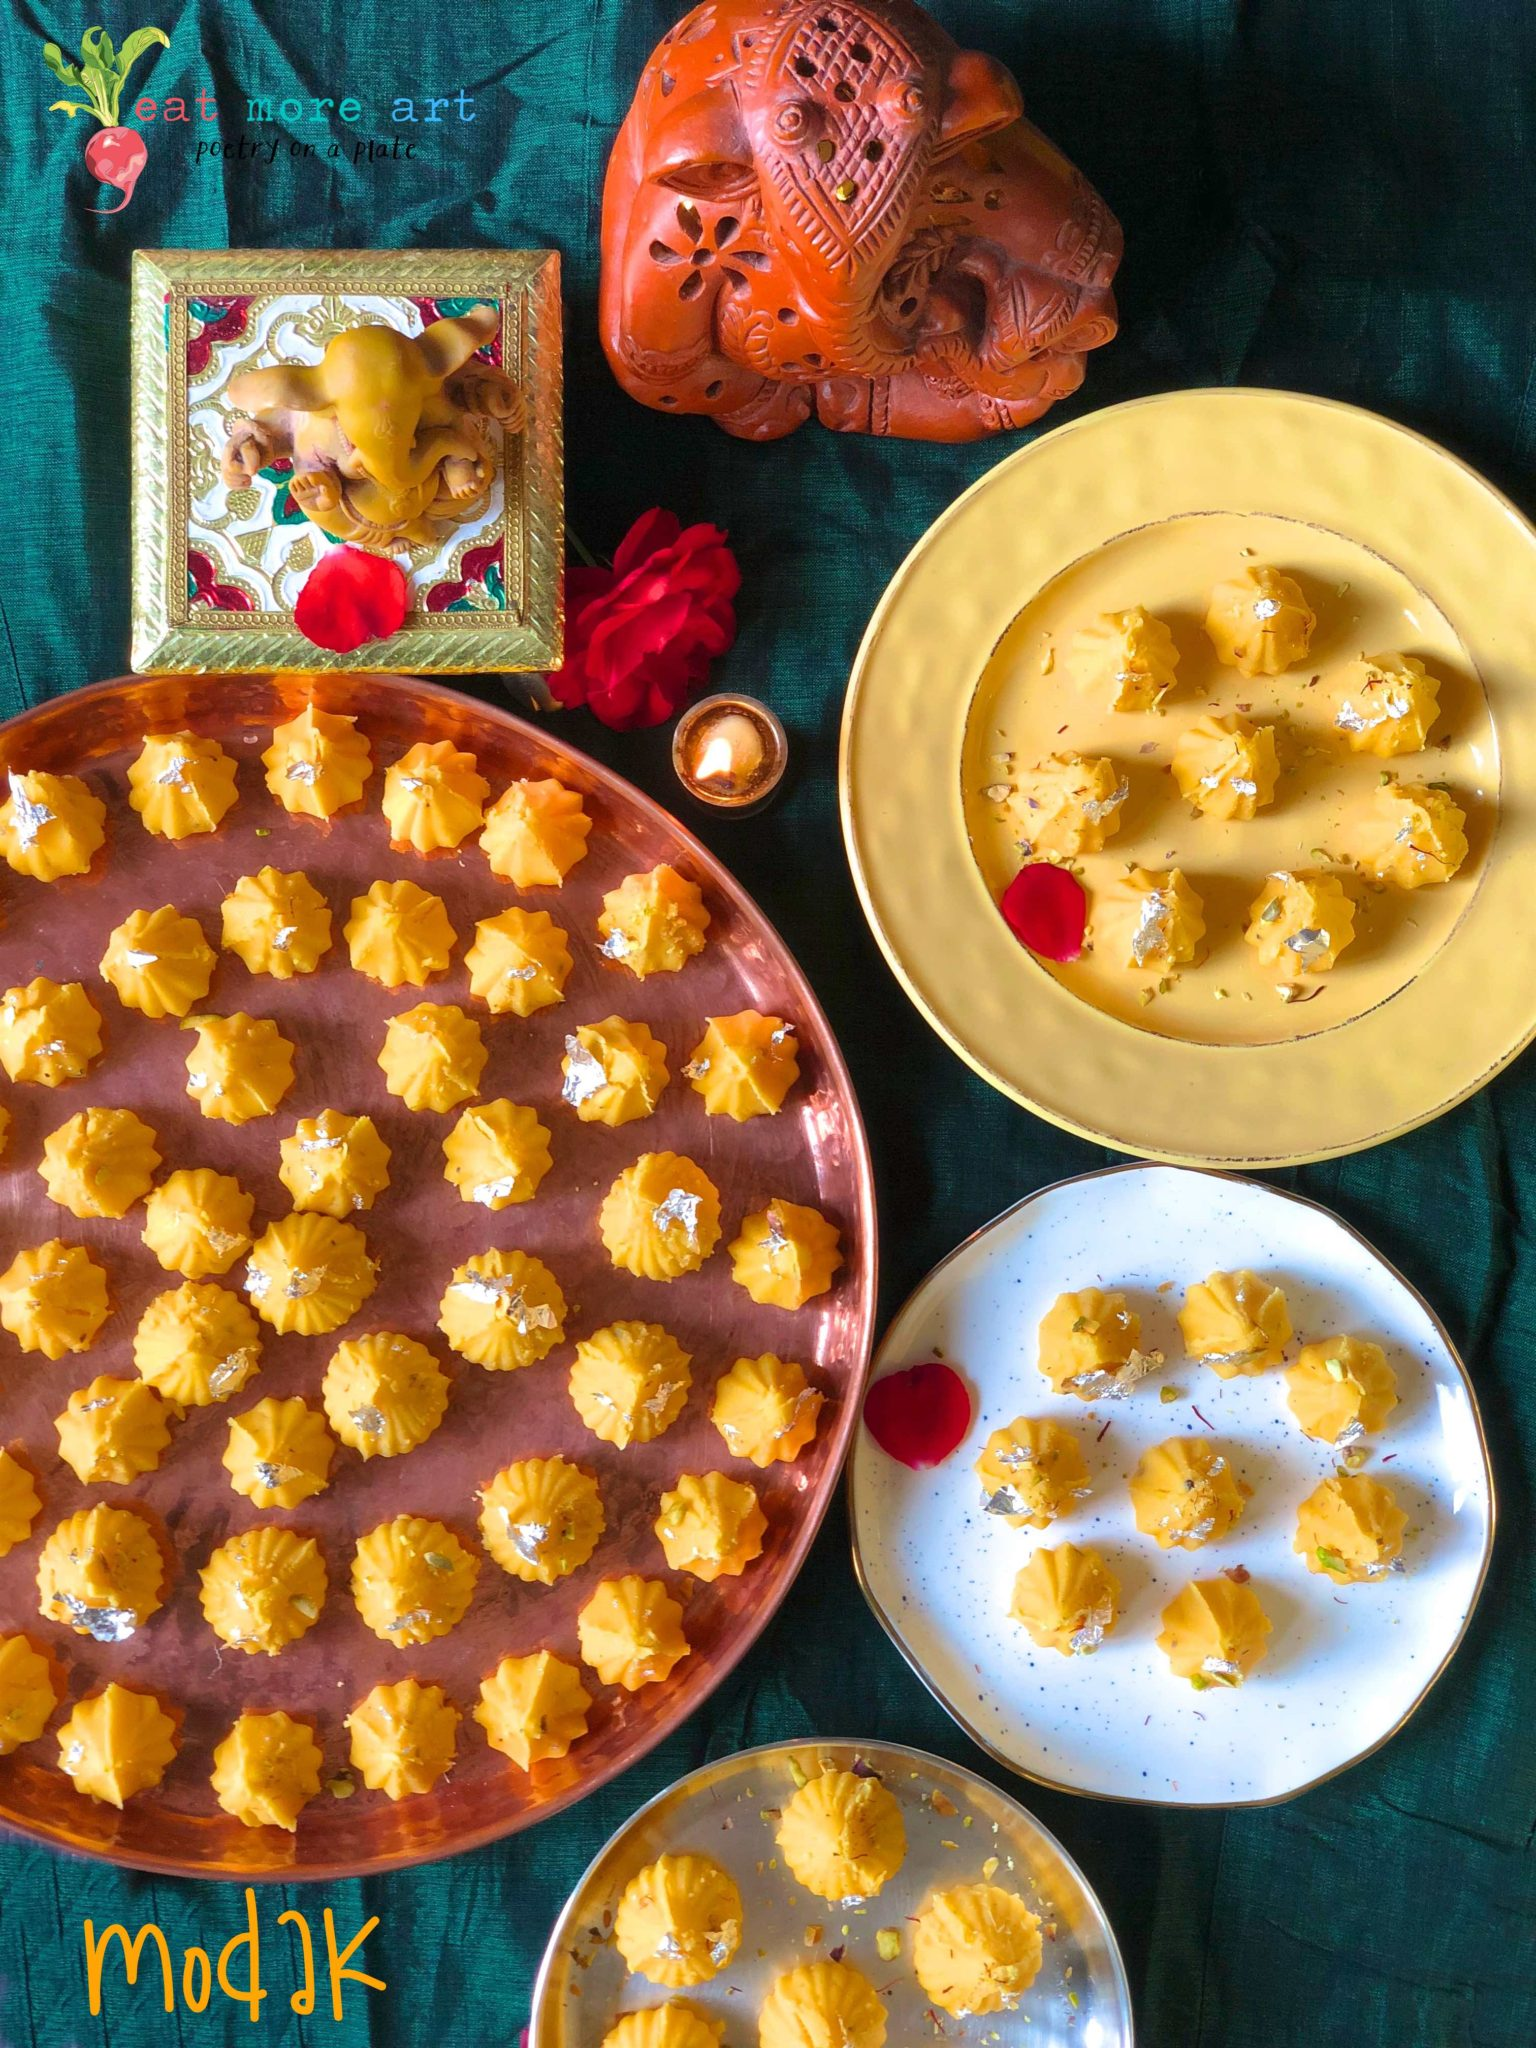 an overhead shot of Yellow color modaks on a few different platters in front of Ganesh idols